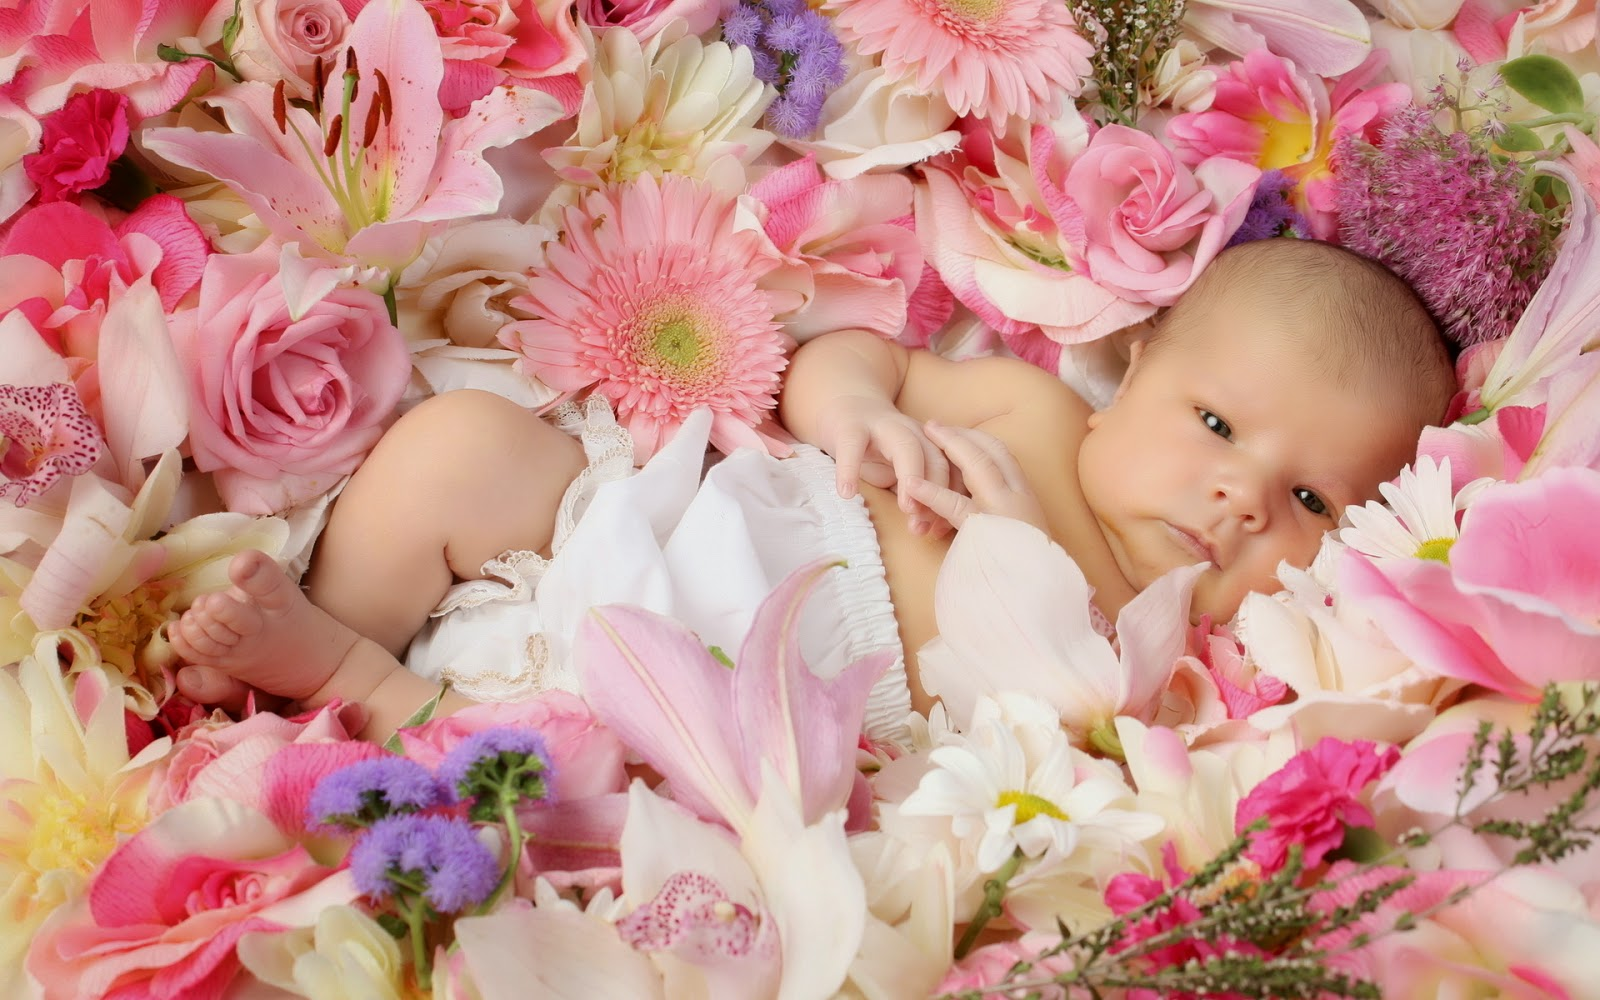 Popular Flower Baby Girl Name Ideas - Best Flowers Delivery